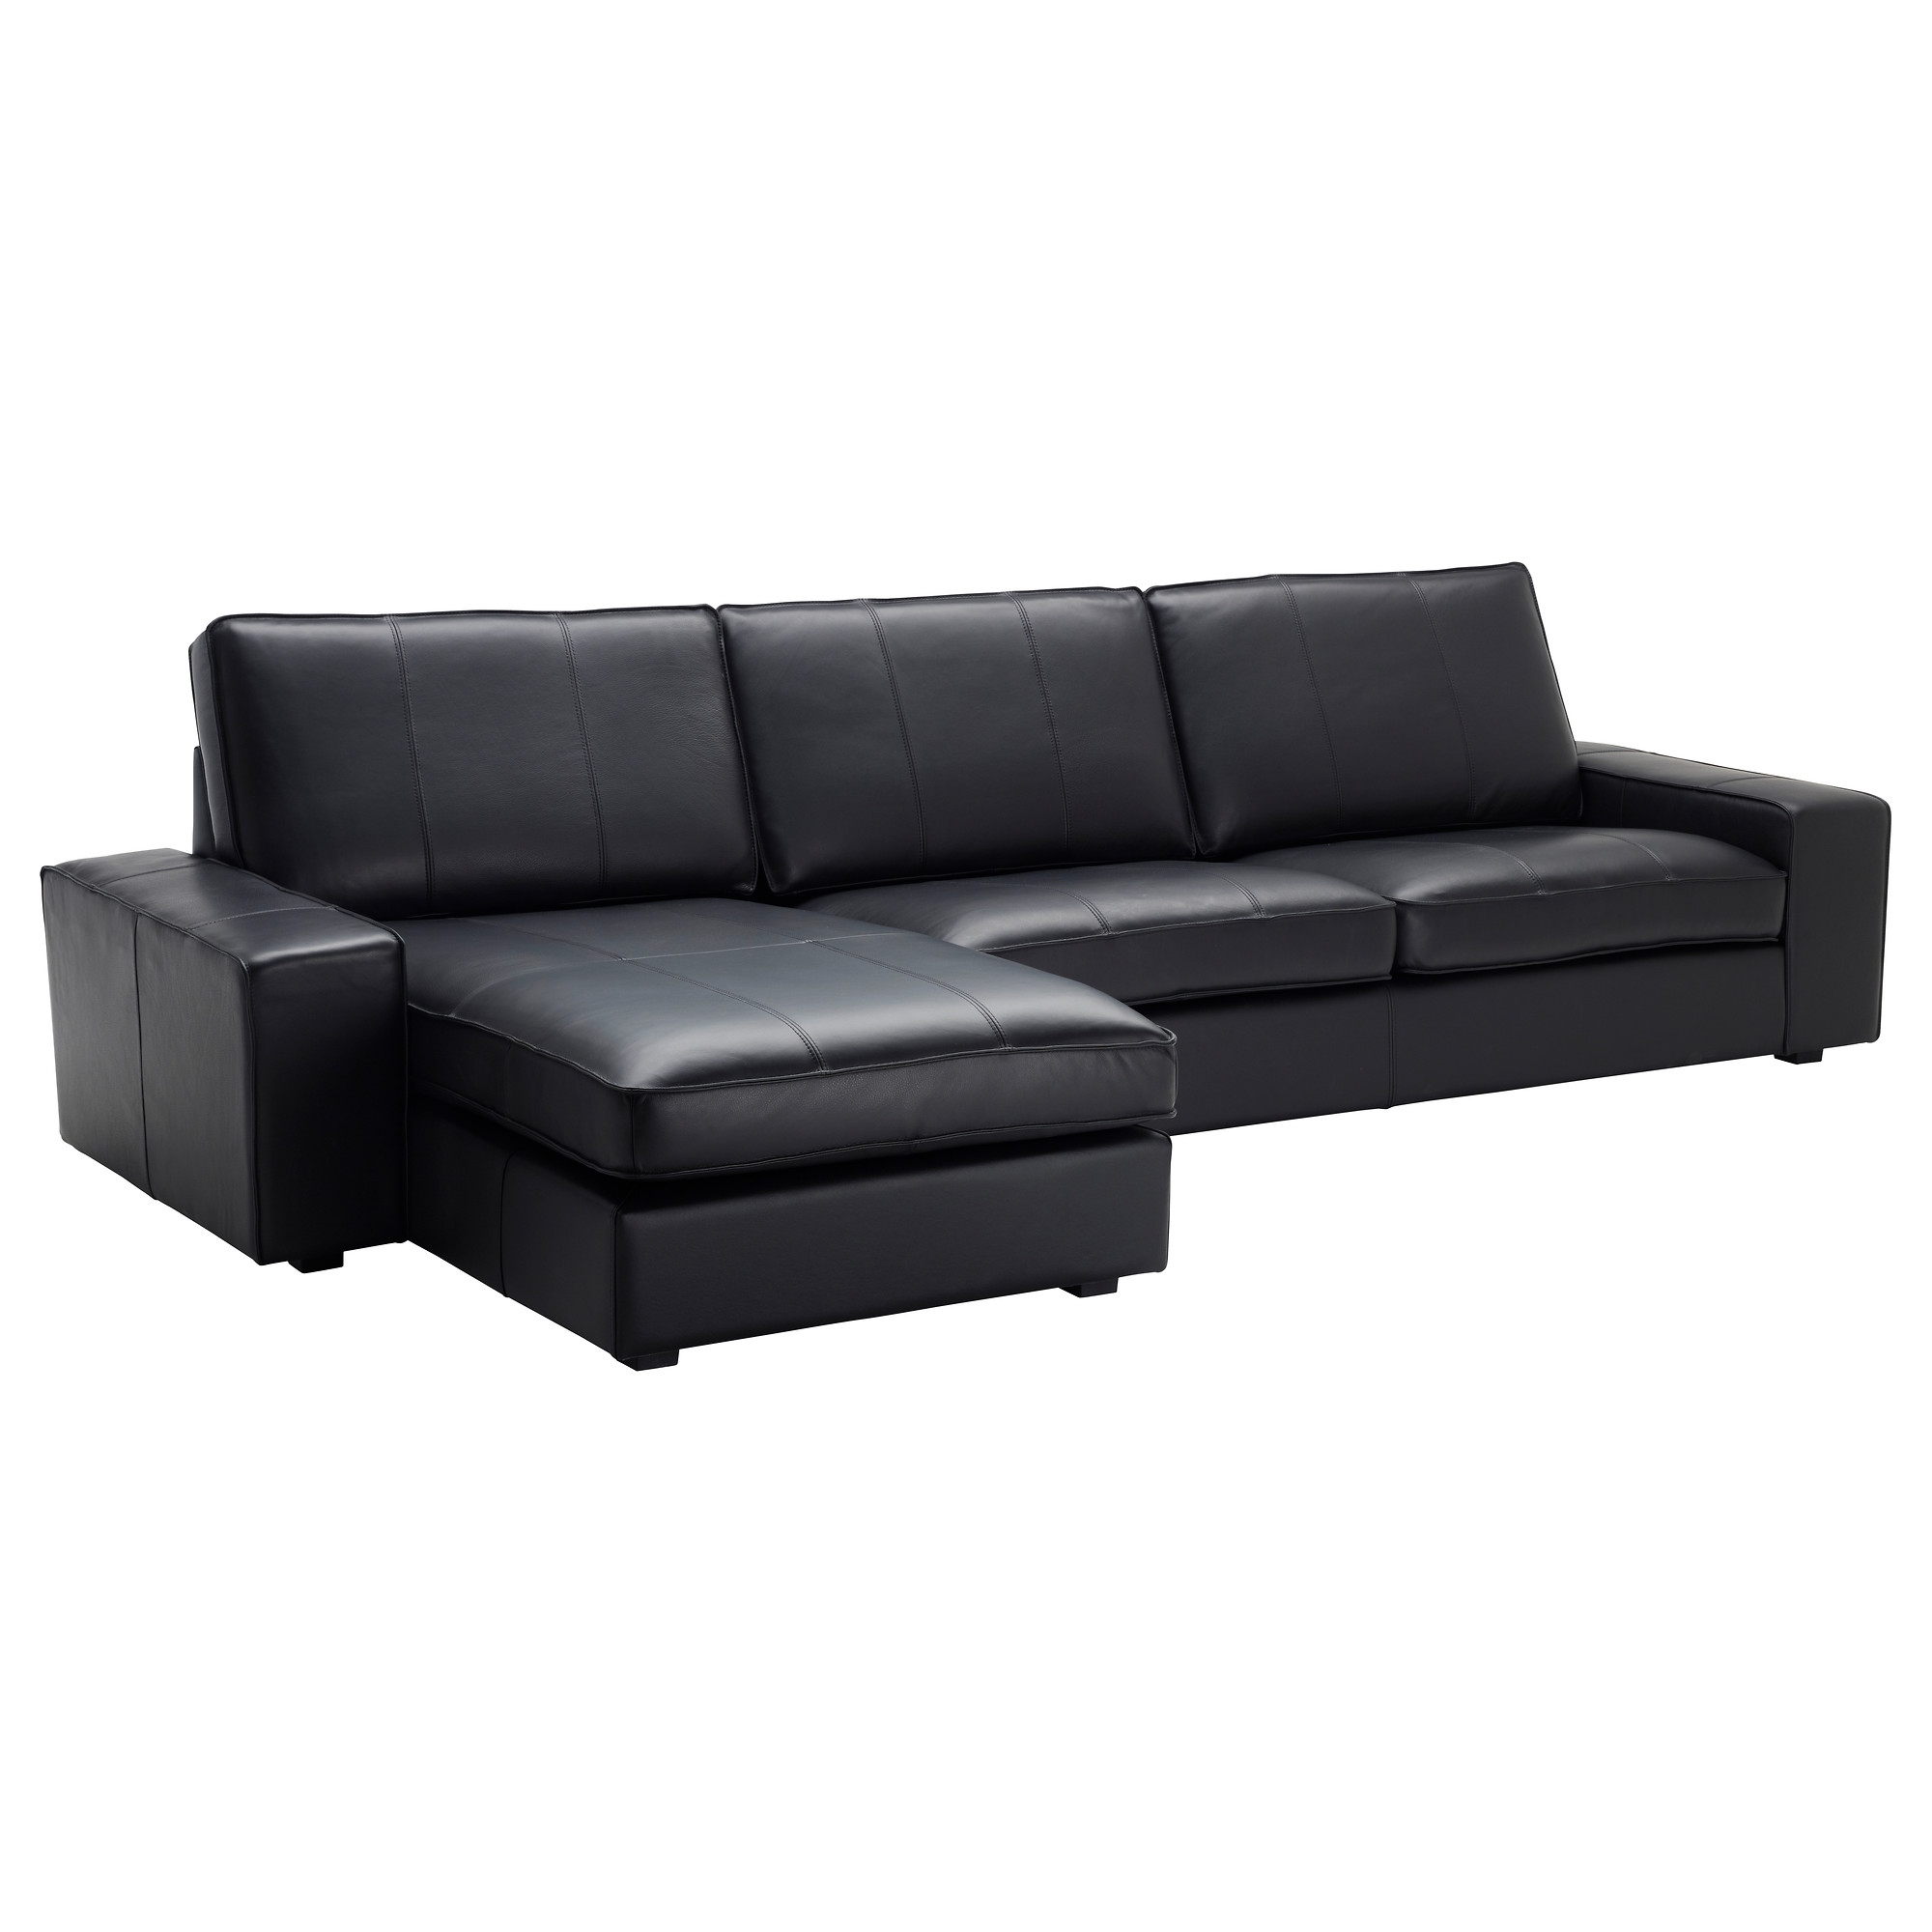 Ikea Chaise Lounges Intended For Most Popular Kivik Sectional, 4 Seat – With Chaise/grann/bomstad Black – Ikea (View 5 of 15)